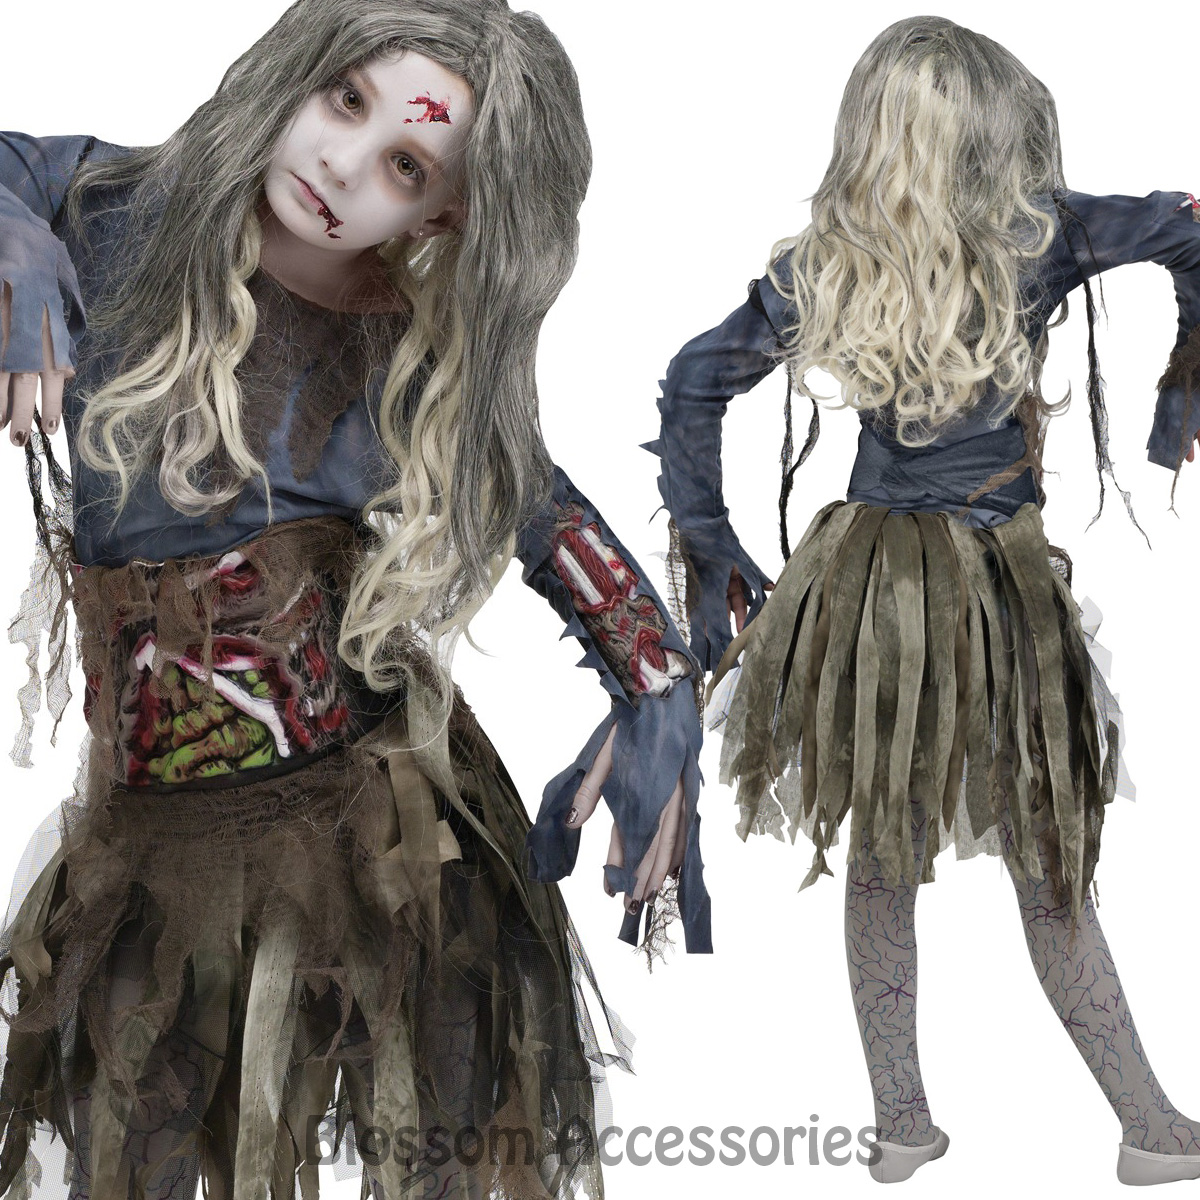 ck863 zombie costume girls teen walking dead ghost horror scary halloween dress ebay. Black Bedroom Furniture Sets. Home Design Ideas